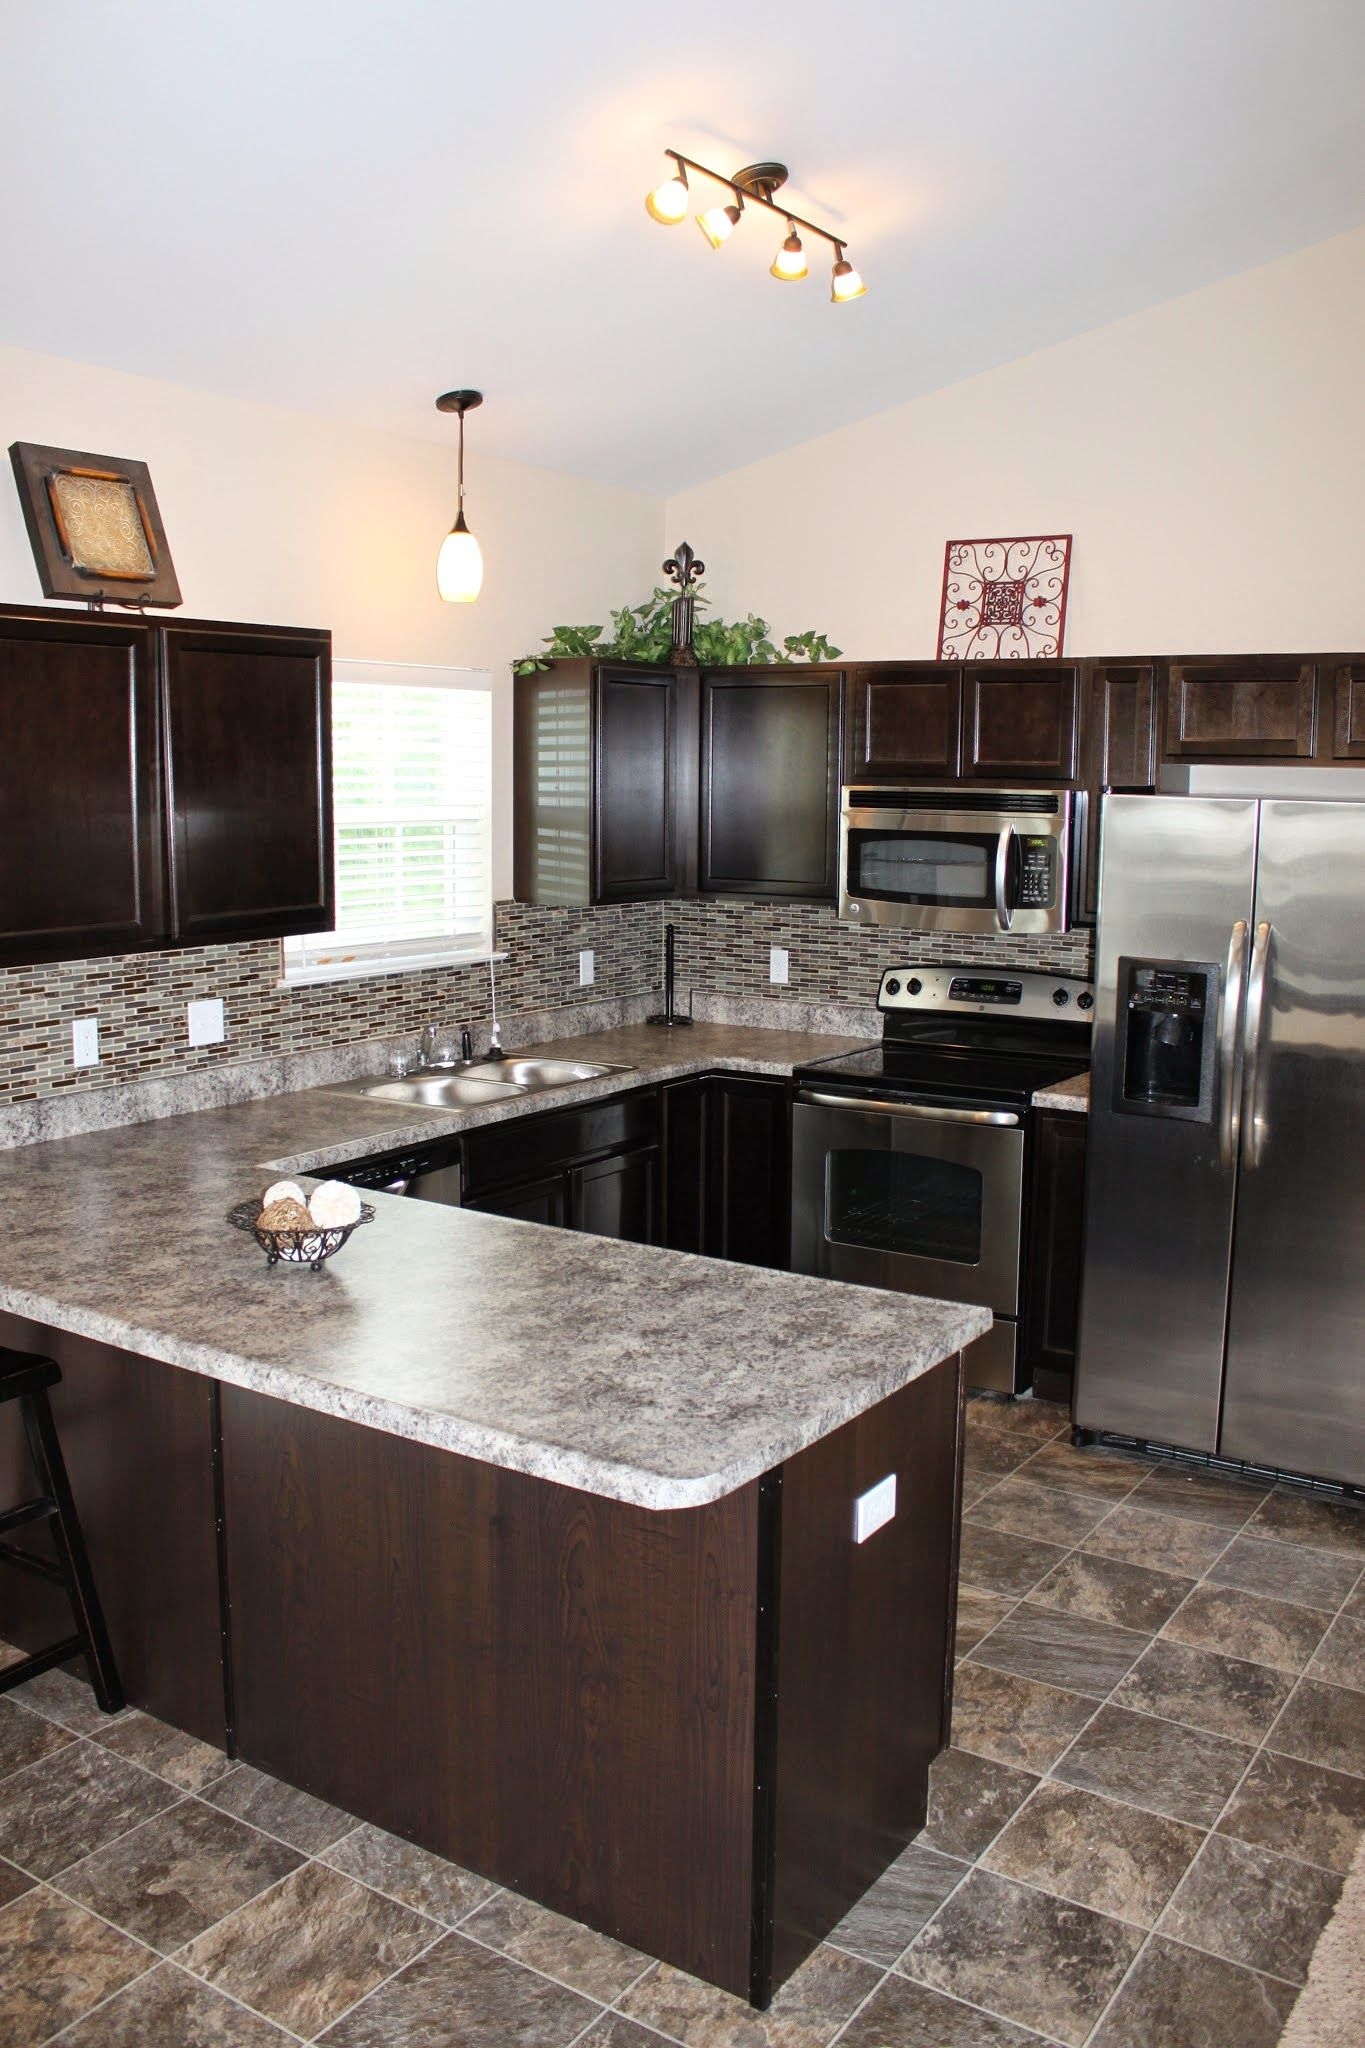 Kitchen featured in The Provence By Cannon Builders, Inc.  in St. Louis, MO